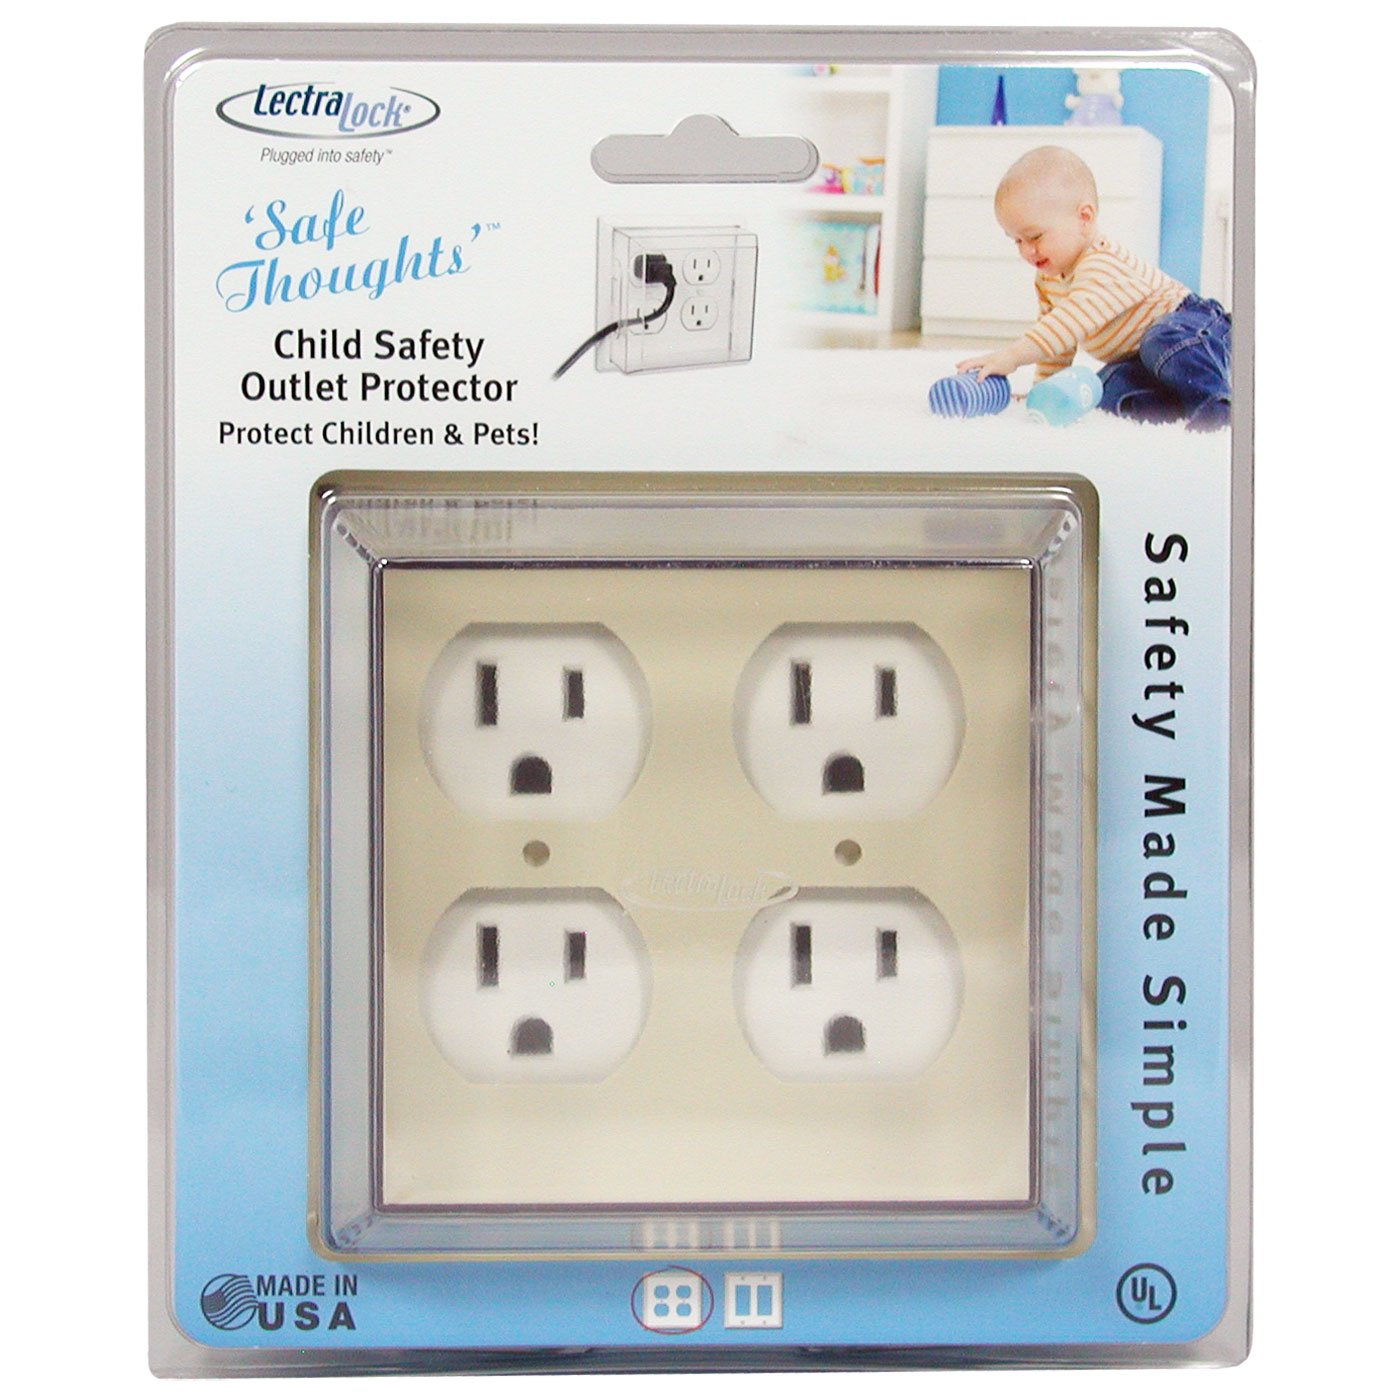 LectraLock - Baby Safety Electrical Outlet Cover - Double - Duplex Style - Deep Cover